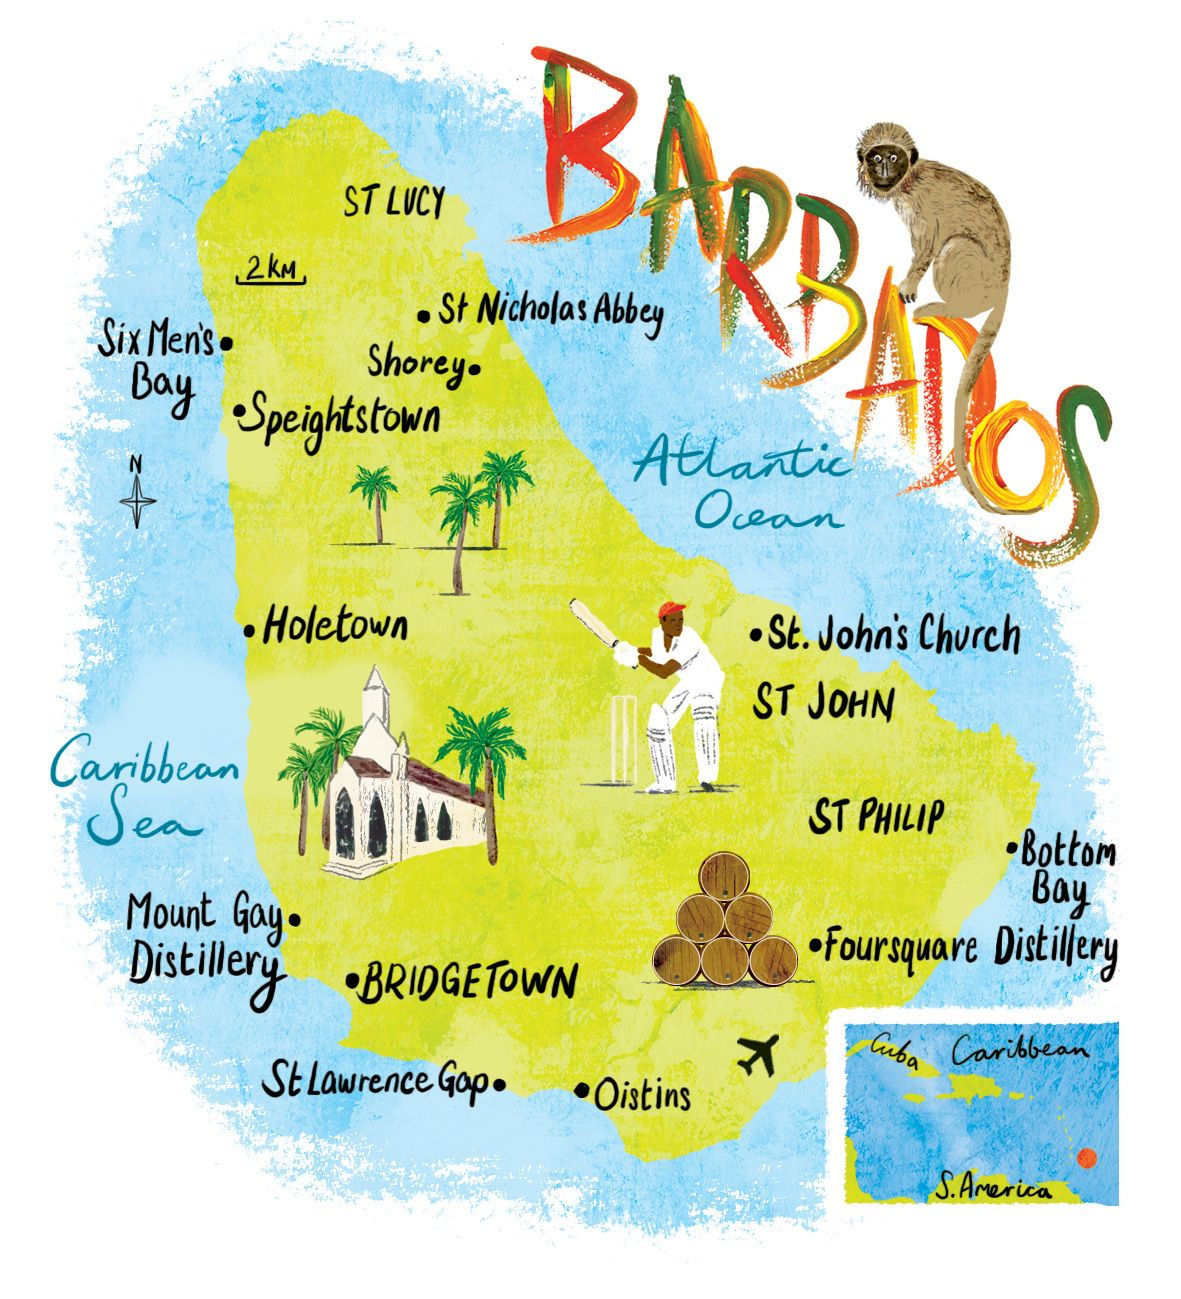 Barbados map by Scott Jessop. Cricket, rum and palm trees ...